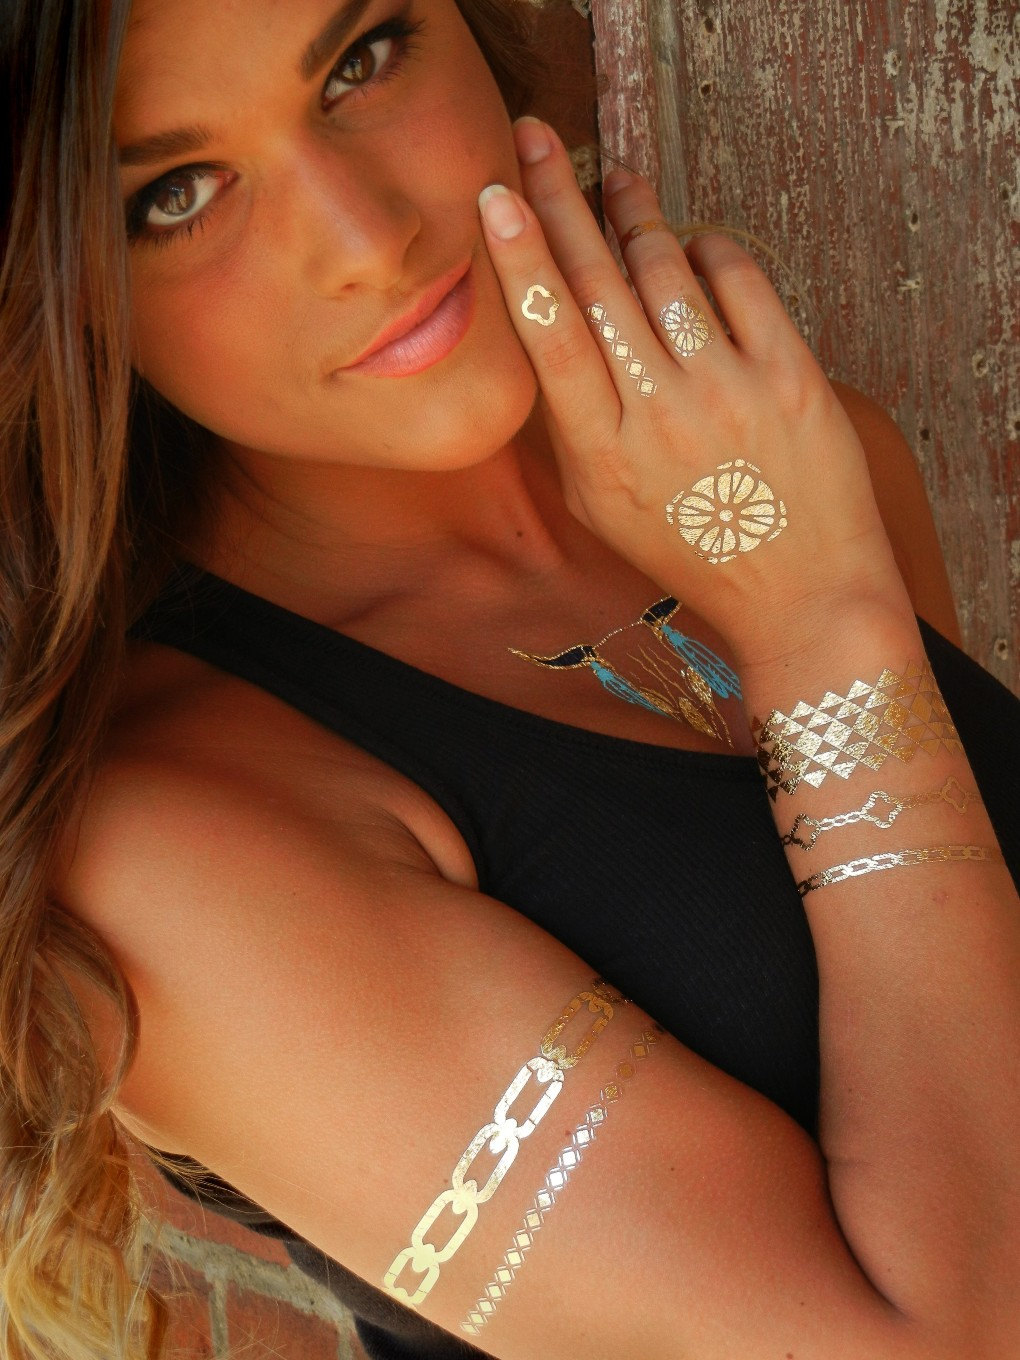 Jewelry-Metallic-Temporary-Tattoos 15 Gold & Silver Jewelry Metallic Temporary Tattoos Ideas 2016 15 Gold & Silver Jewelry Metallic Temporary Tattoos Ideas 2016 Jewelry Metallic Temporary Tattoos2